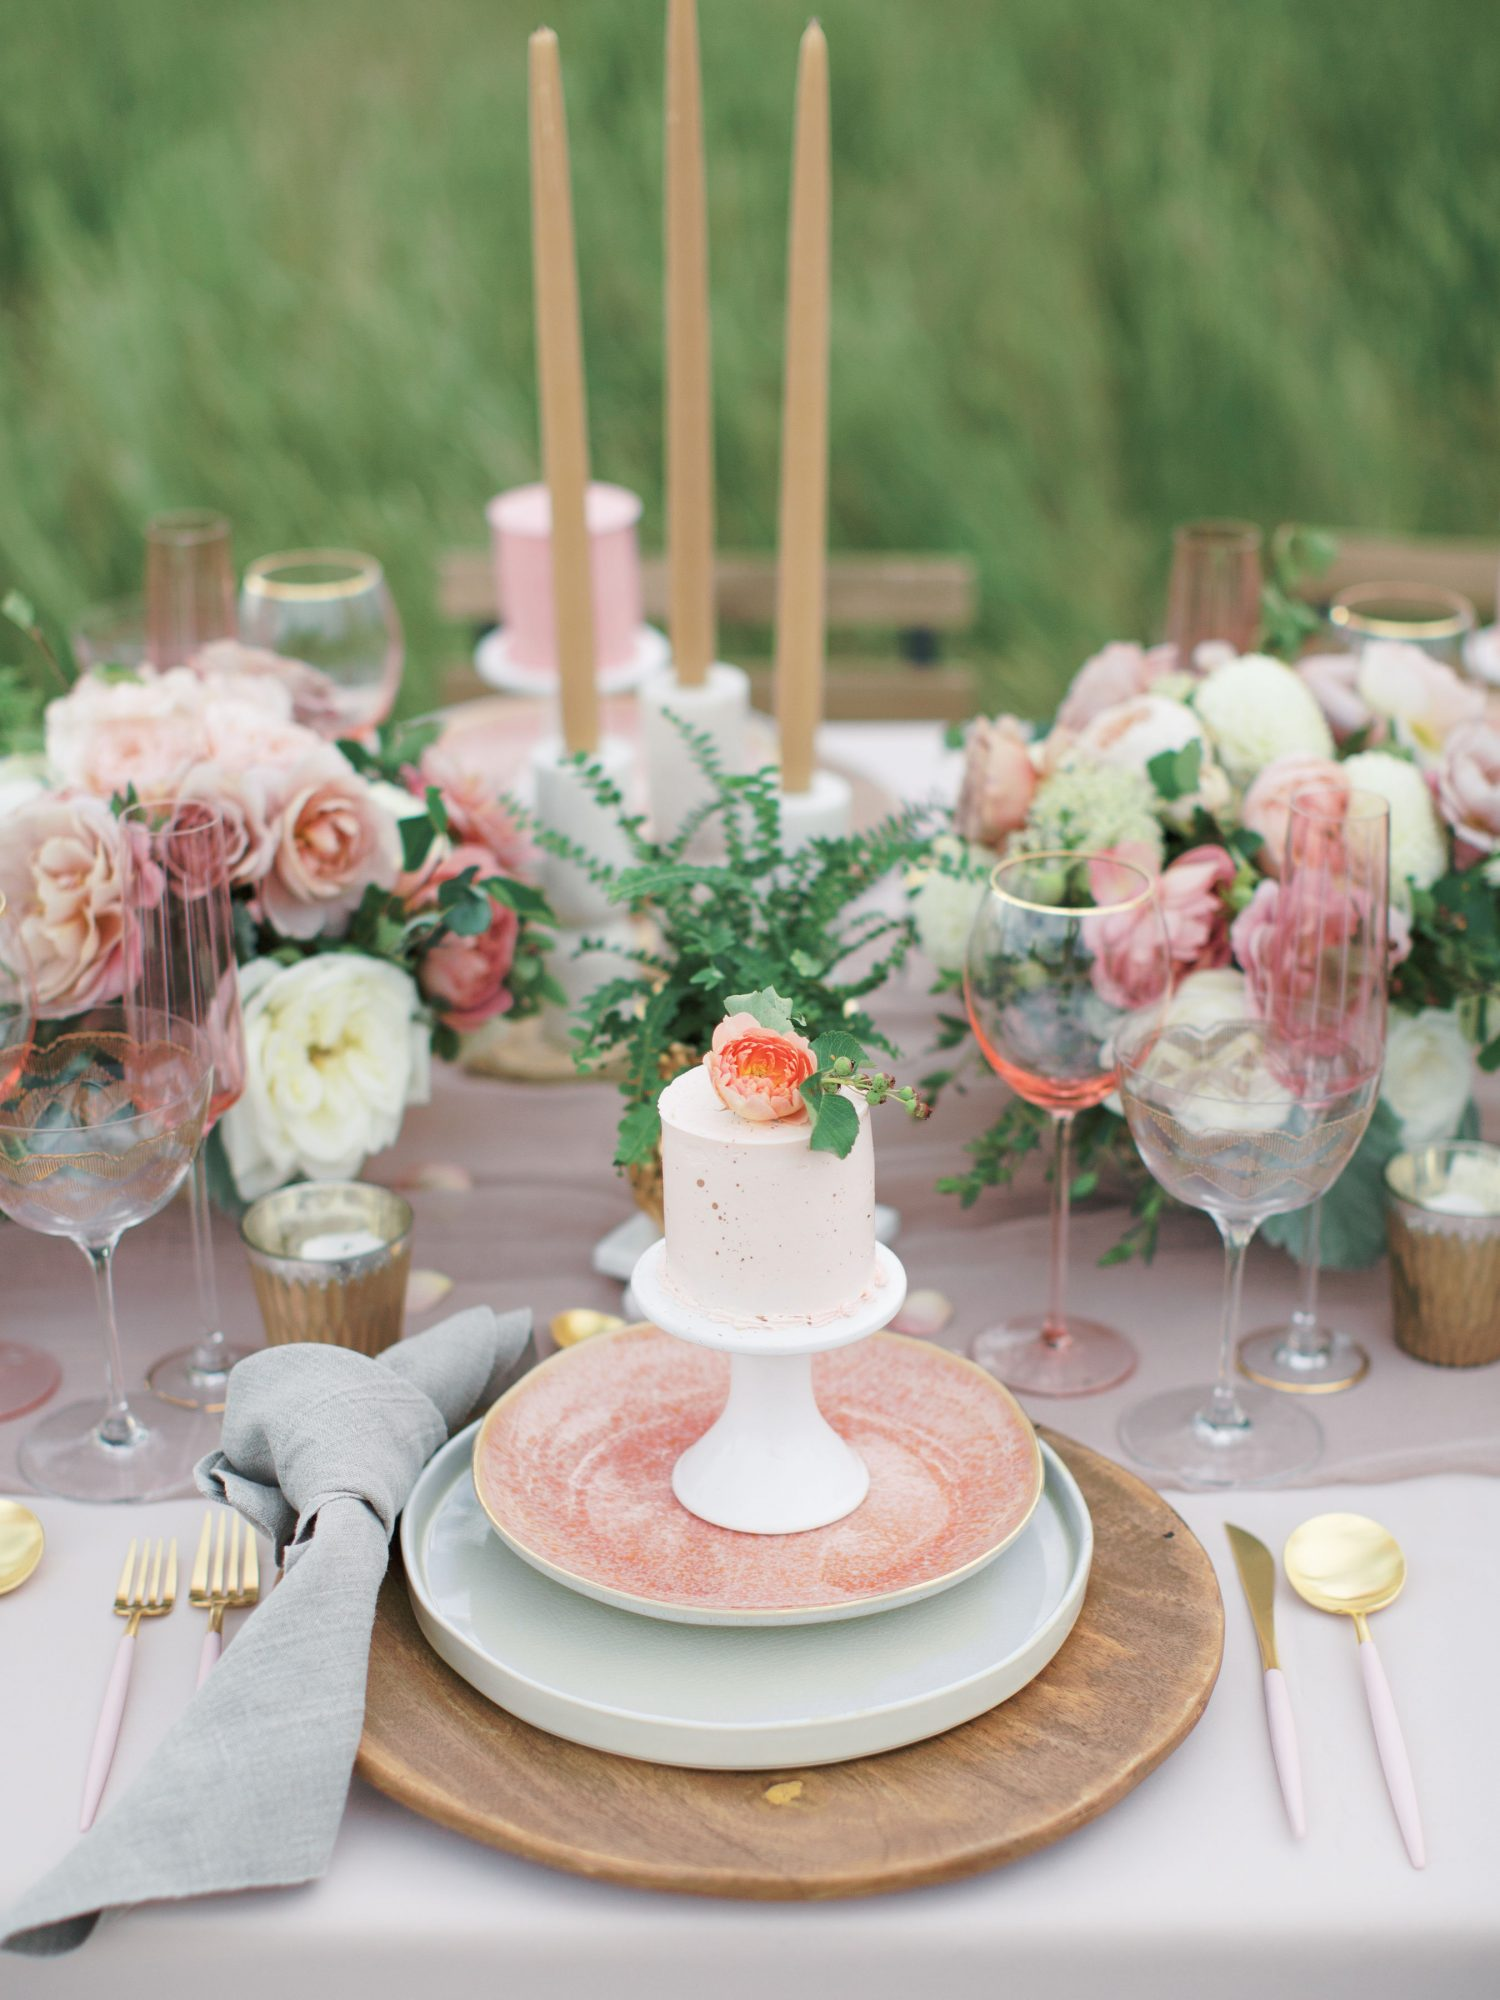 tablescape with mini cakes